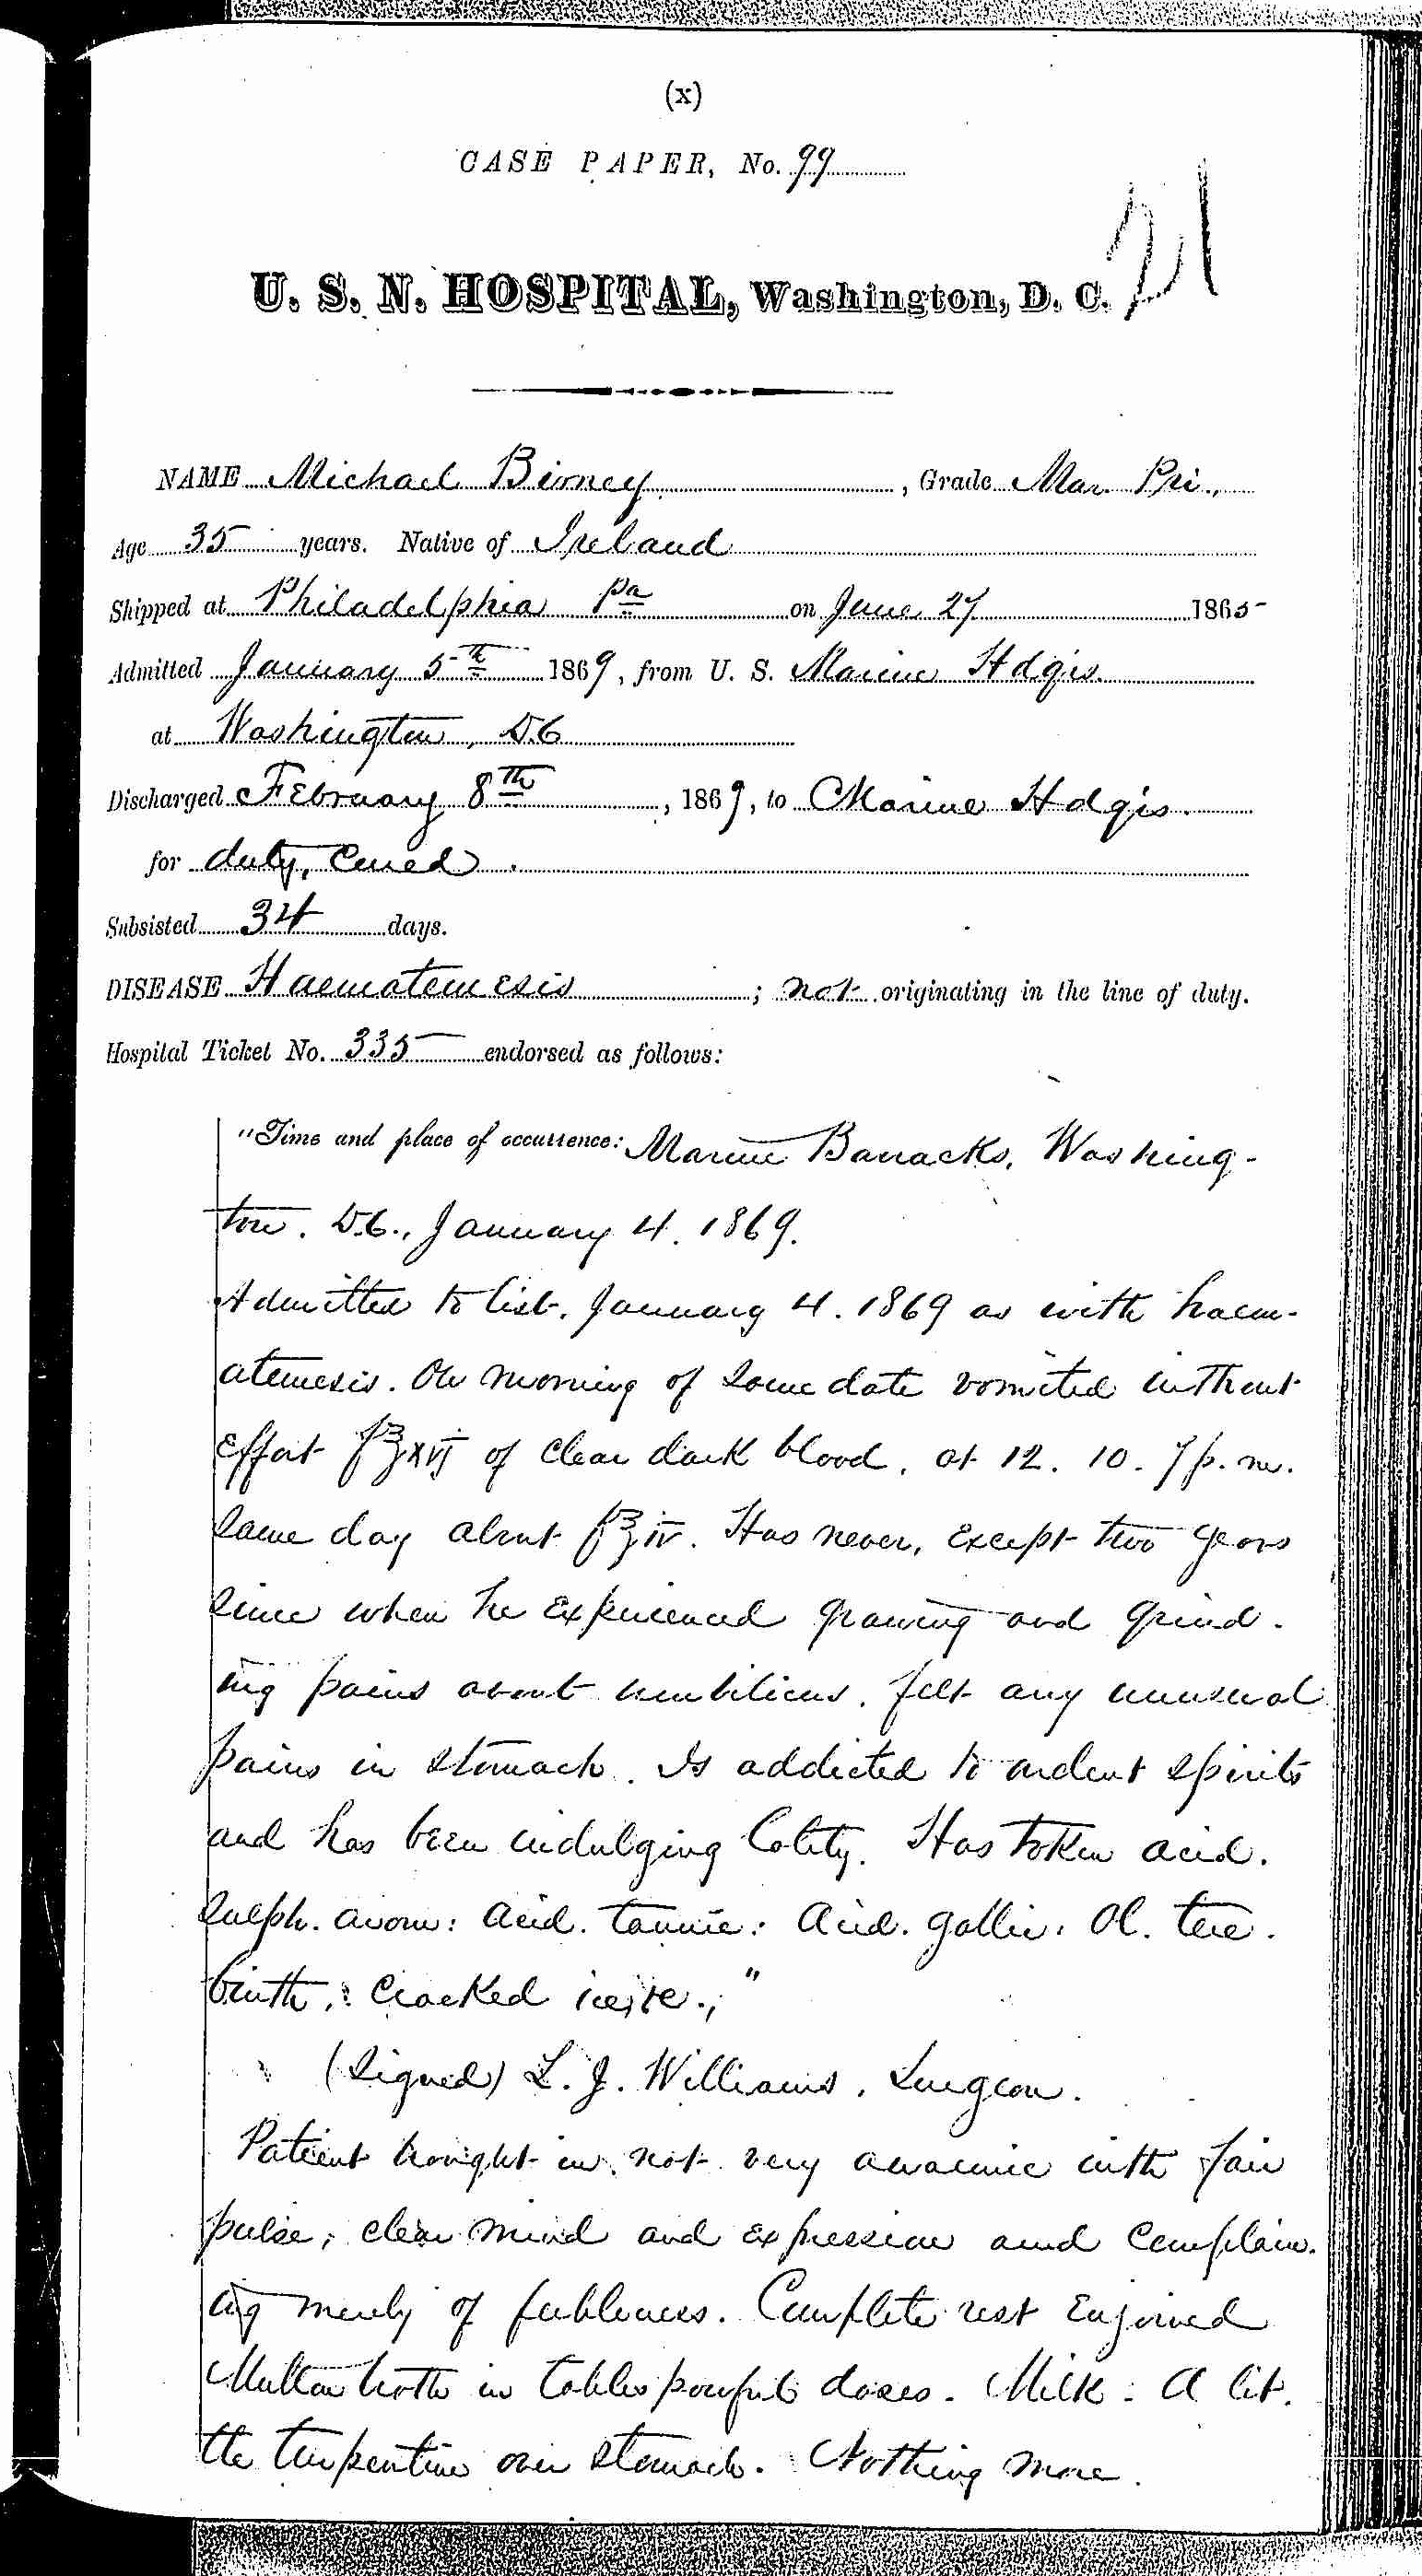 Entry for Michael Birney (page 1 of 3) in the log Hospital Tickets and Case Papers - Naval Hospital - Washington, D.C. - 1868-69